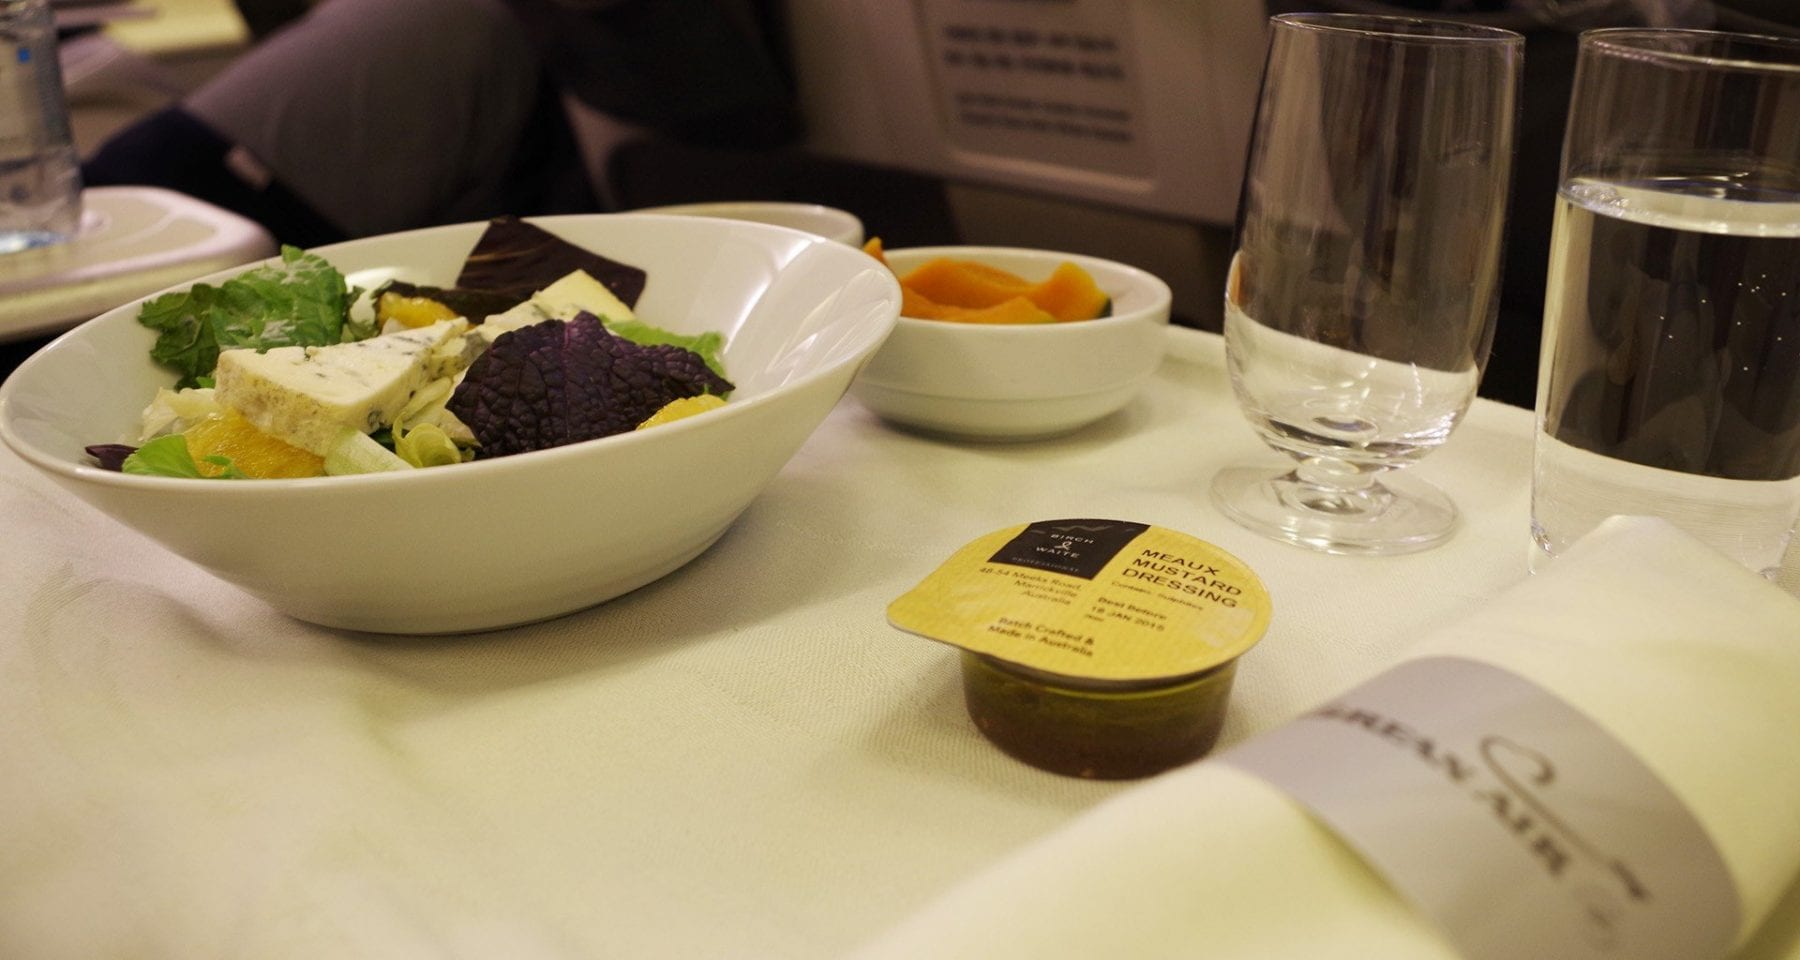 Korean air salad